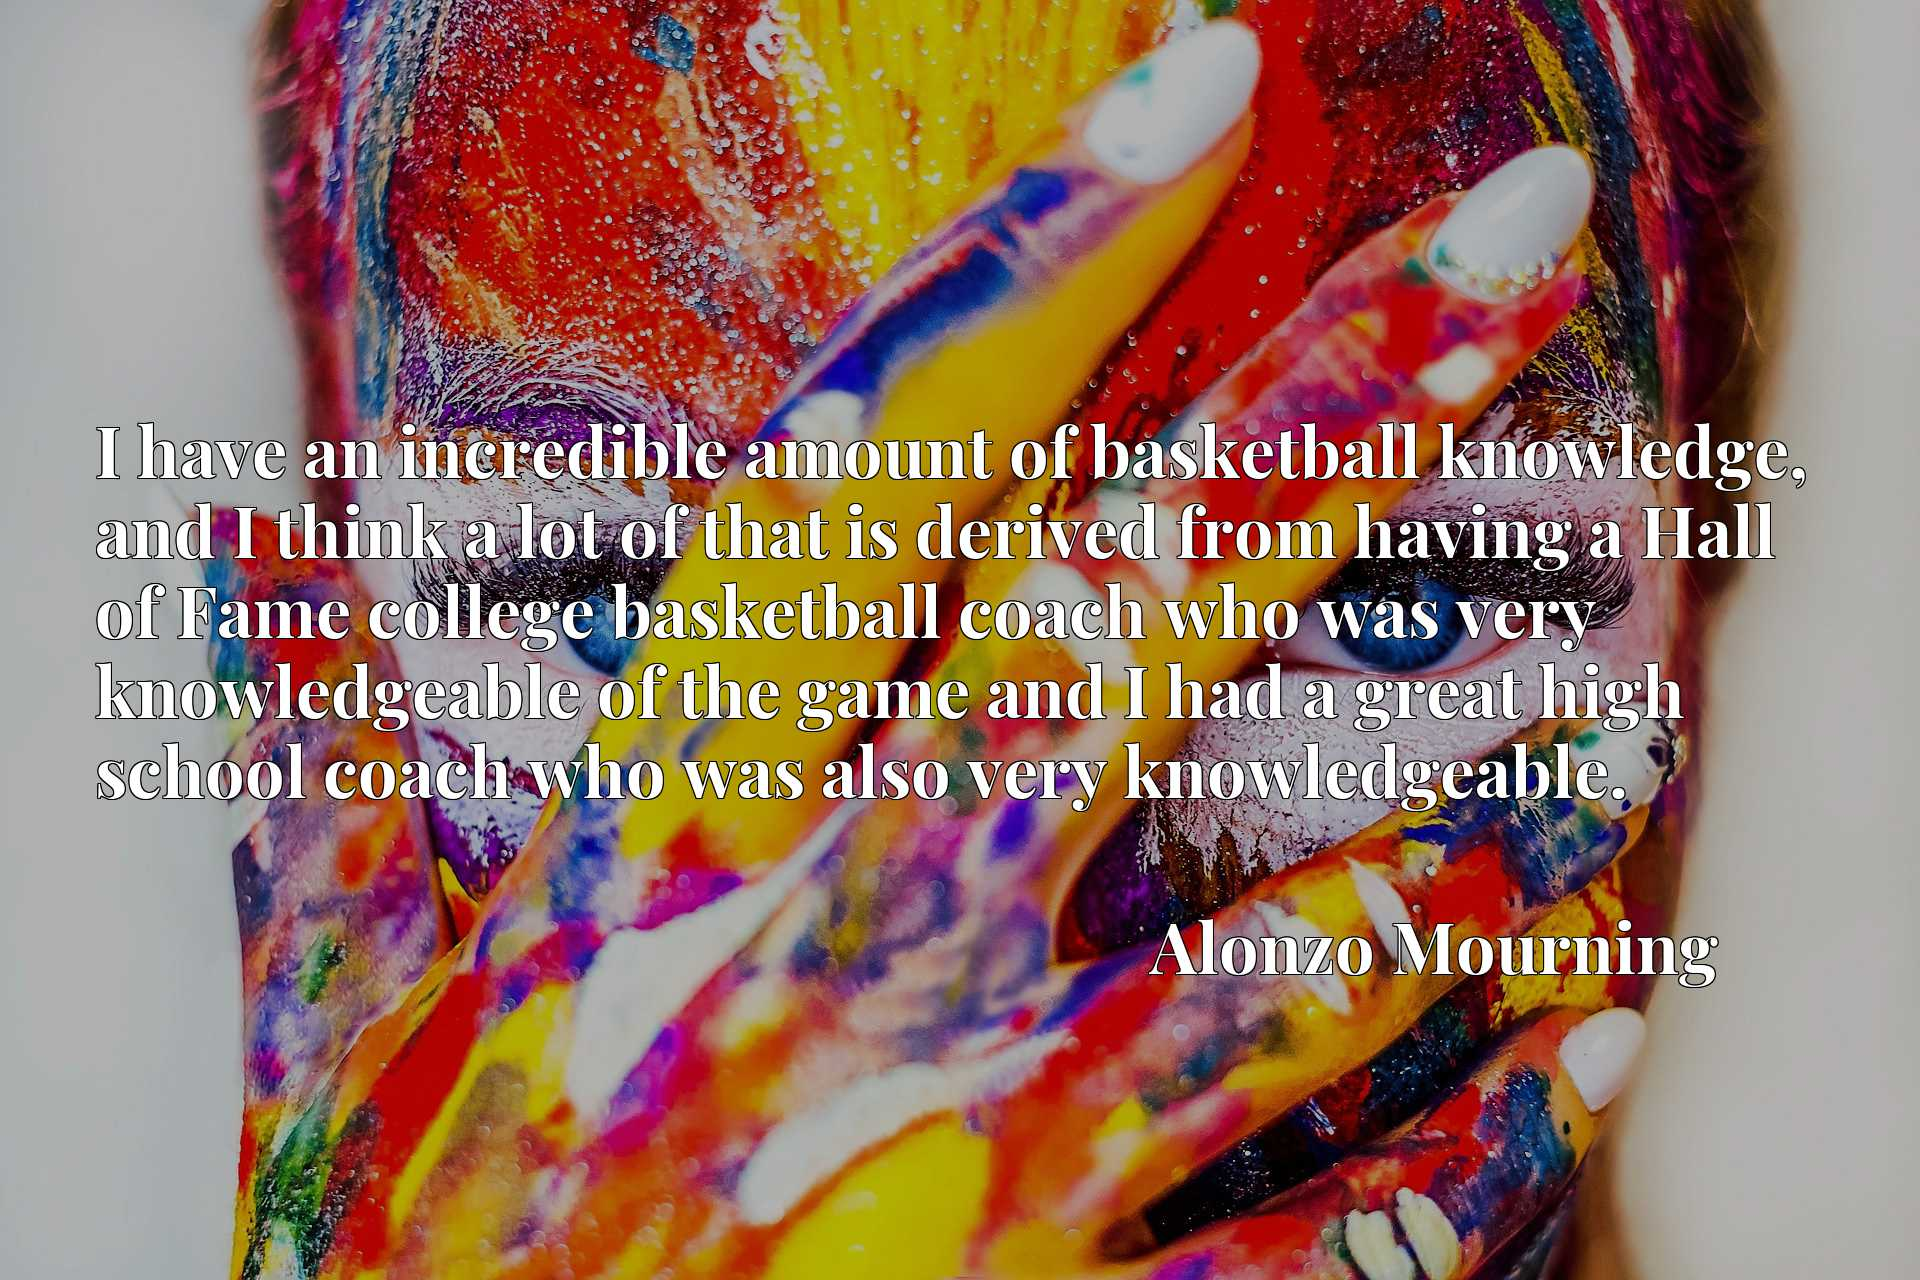 I have an incredible amount of basketball knowledge, and I think a lot of that is derived from having a Hall of Fame college basketball coach who was very knowledgeable of the game and I had a great high school coach who was also very knowledgeable.